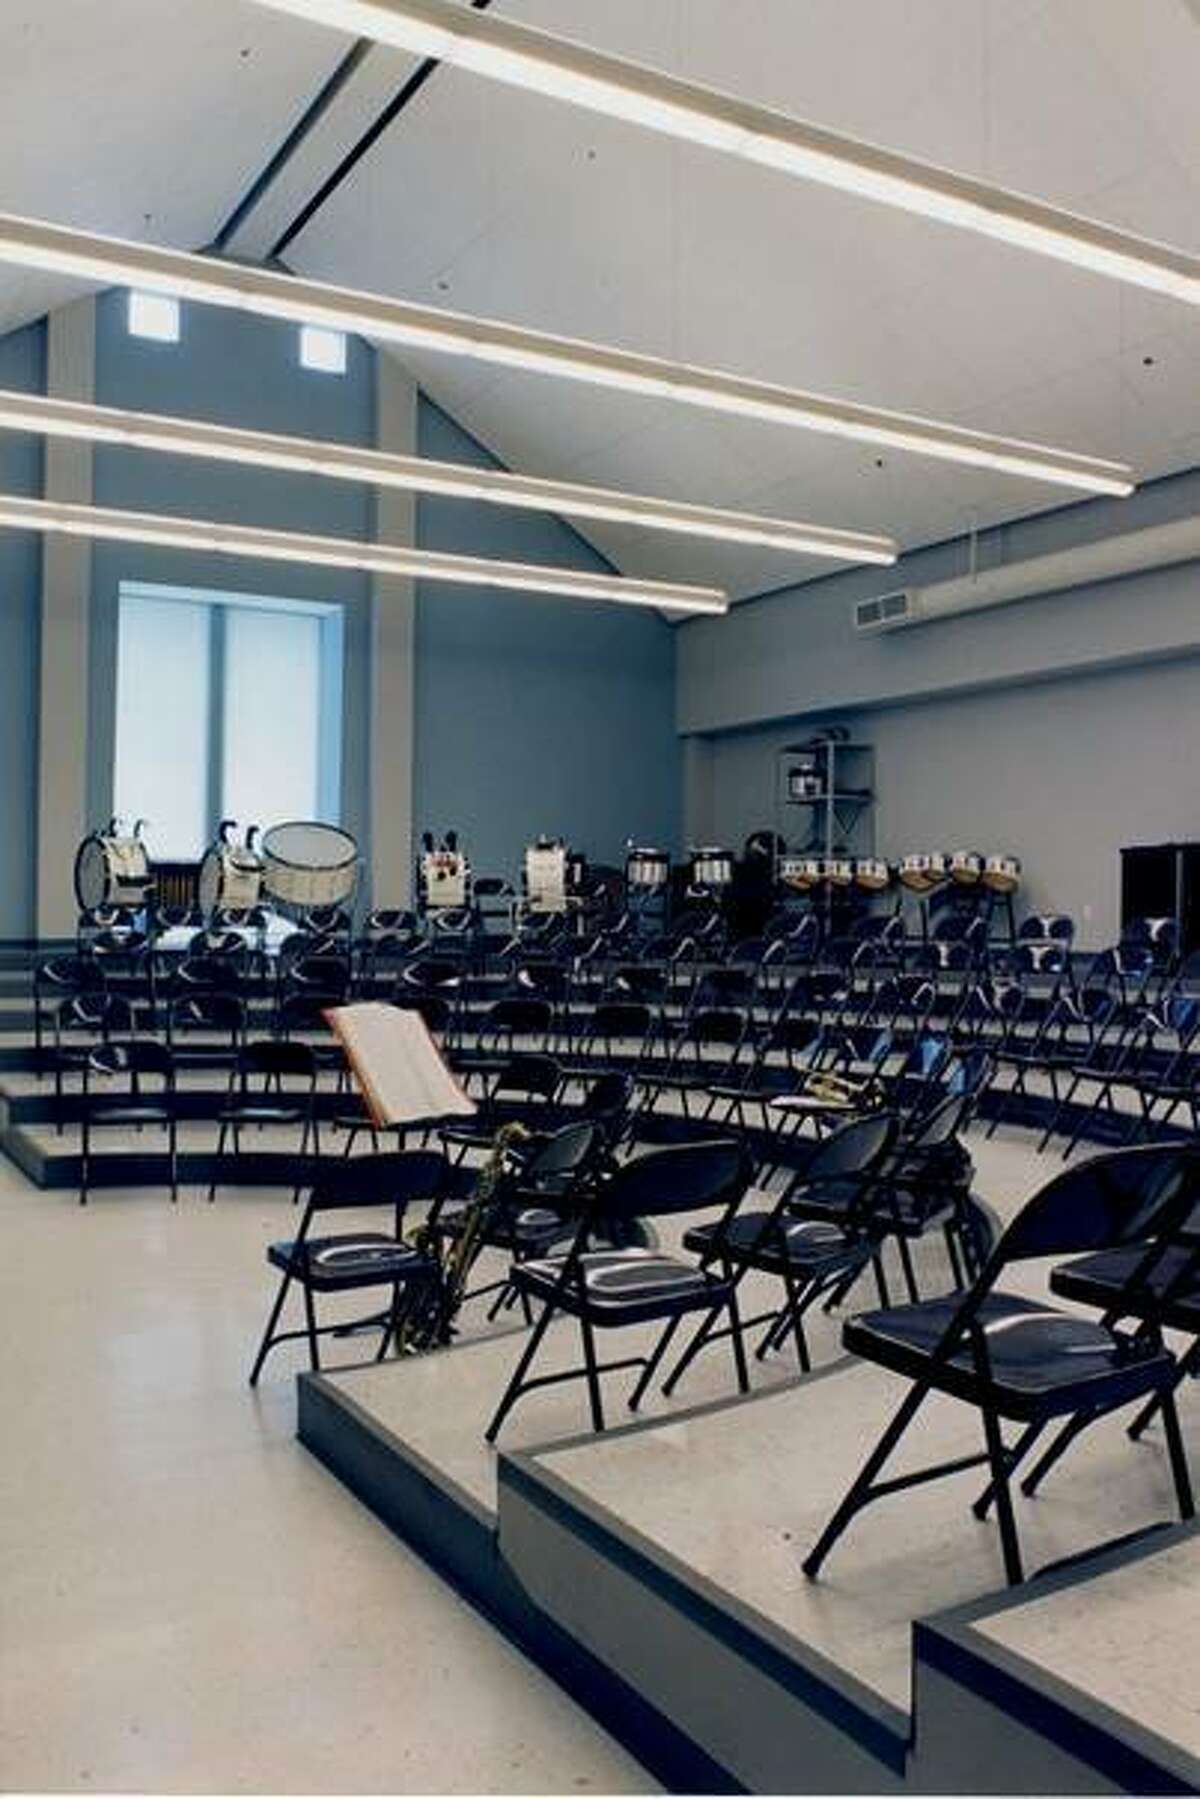 The band room as it was first built, with the semicircle of steps in the center of the room.